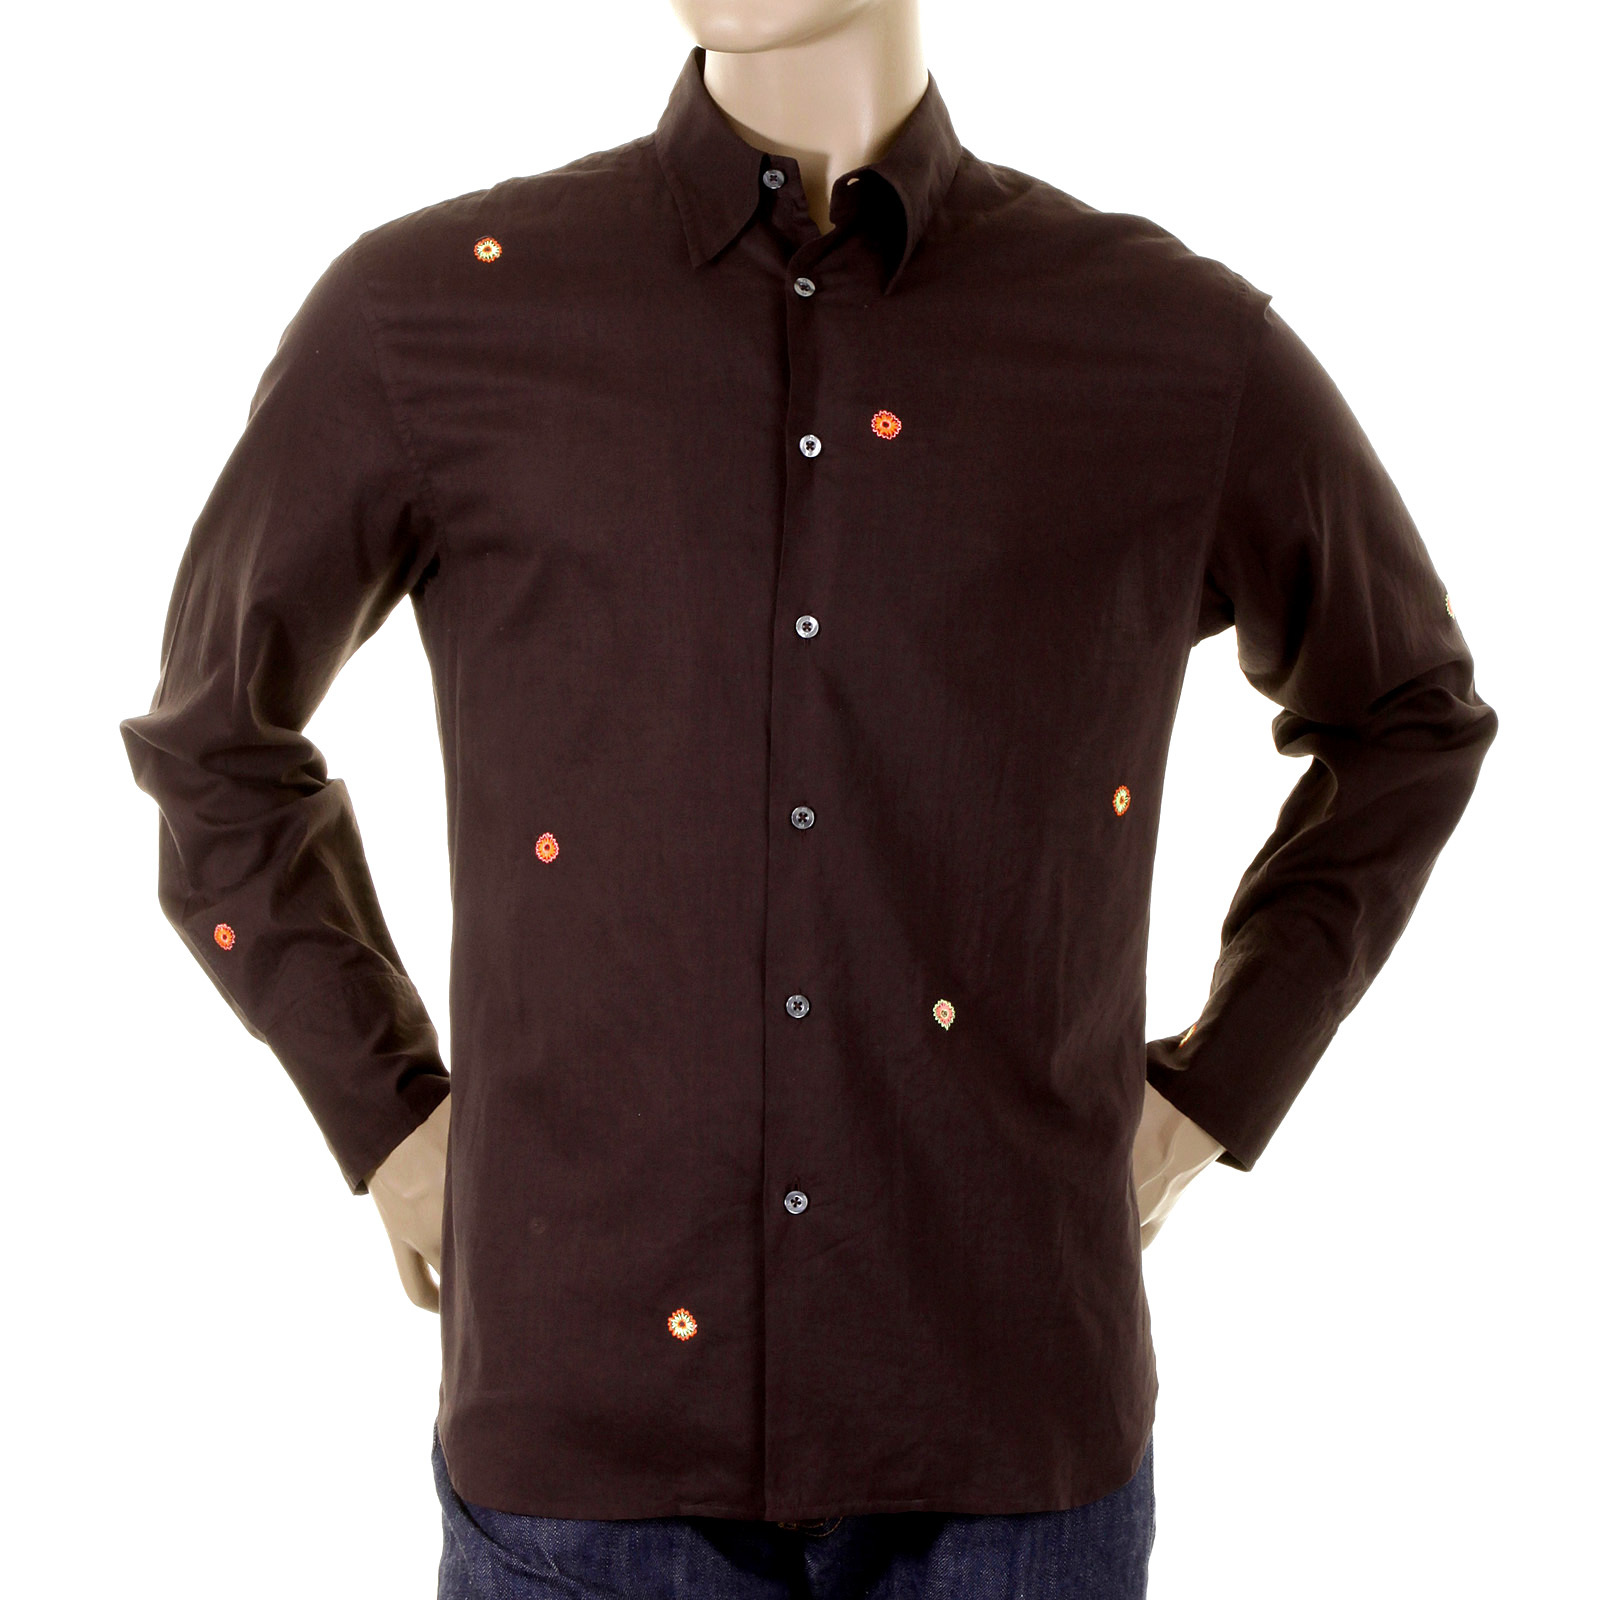 Paul smith shirt mens dark brown long sleeve shirt 721e for Mens chocolate brown shirt